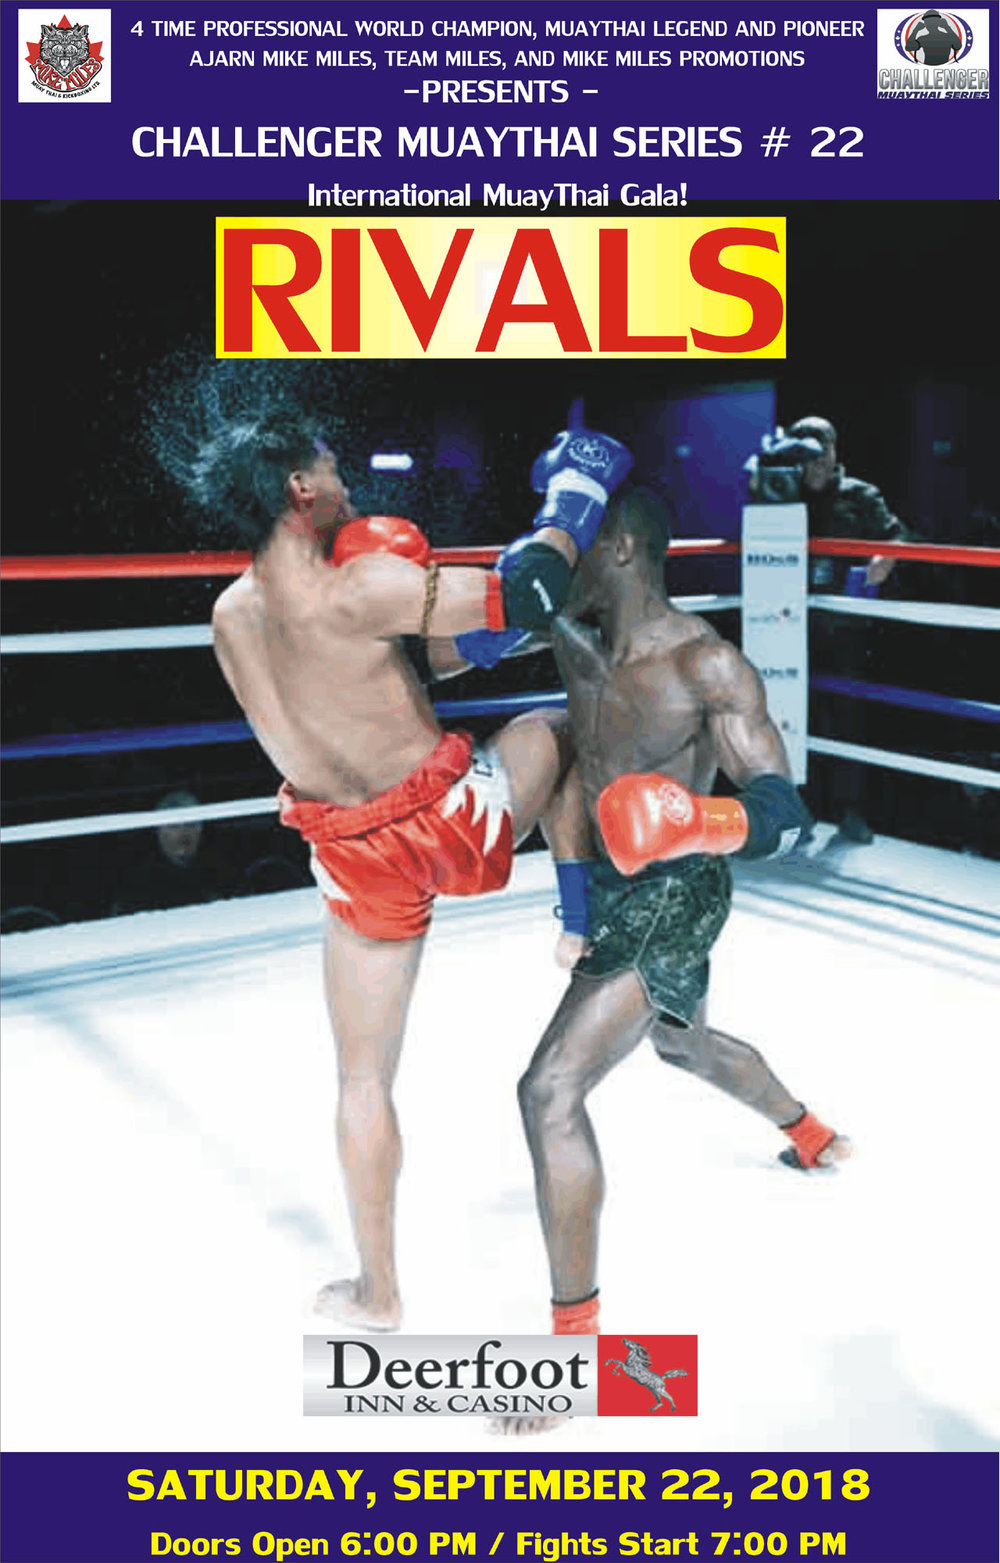 rivals poster small.jpg